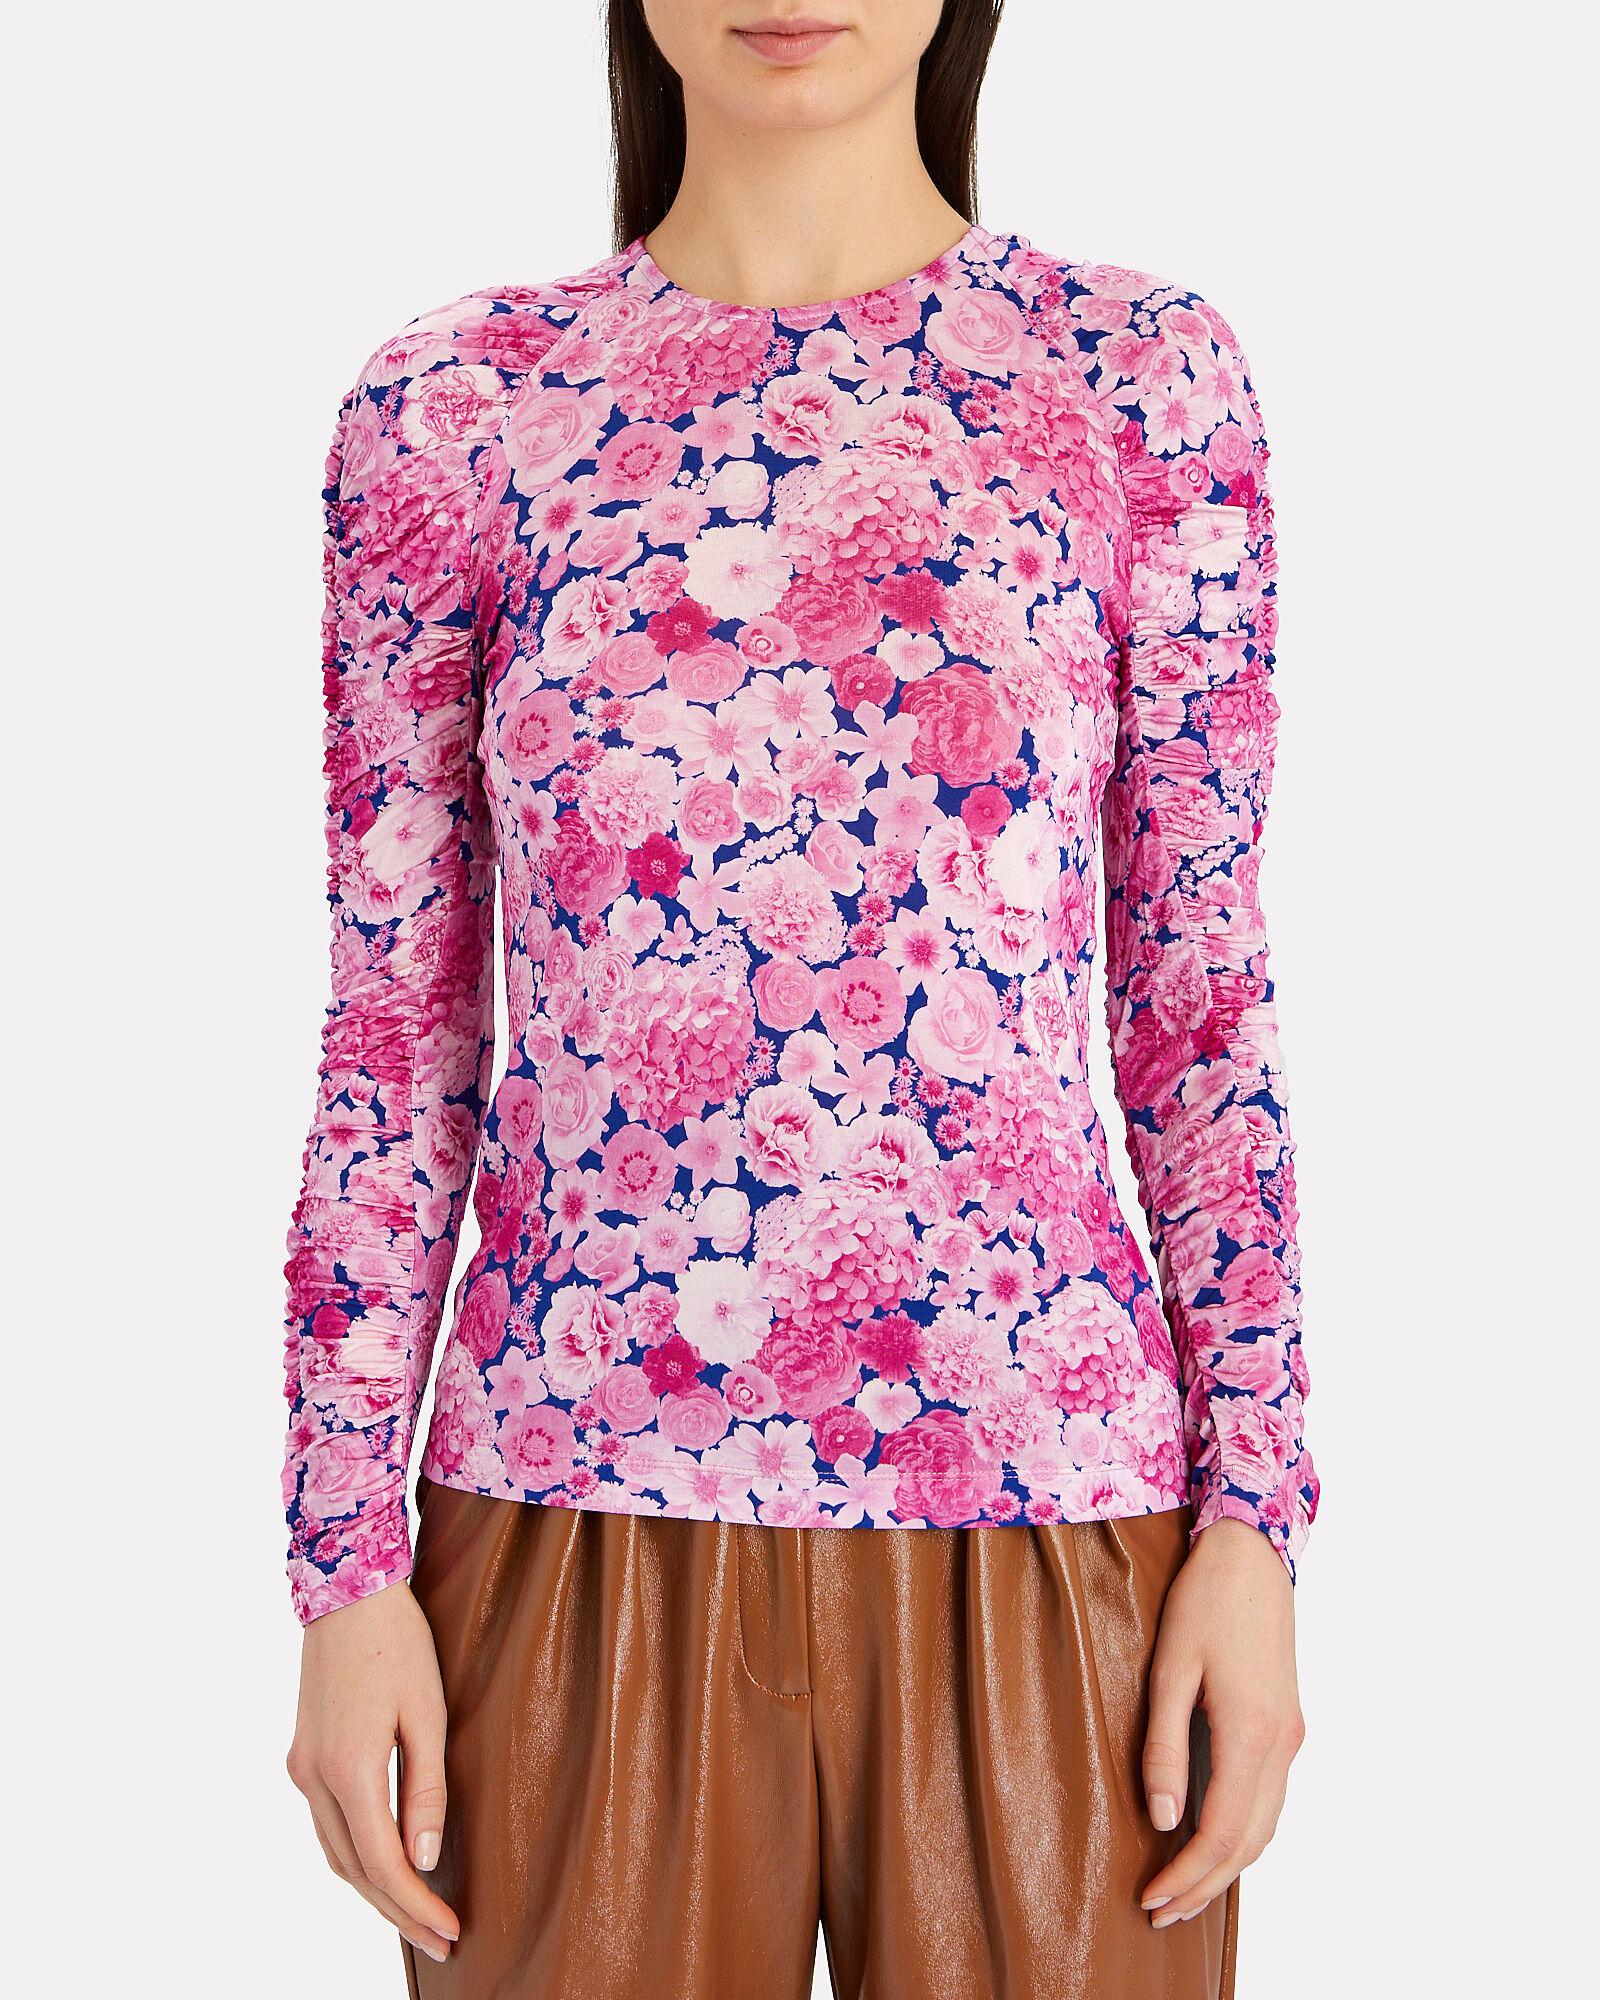 Carlin Ruched Floral Jersey Top, MULTI, hi-res